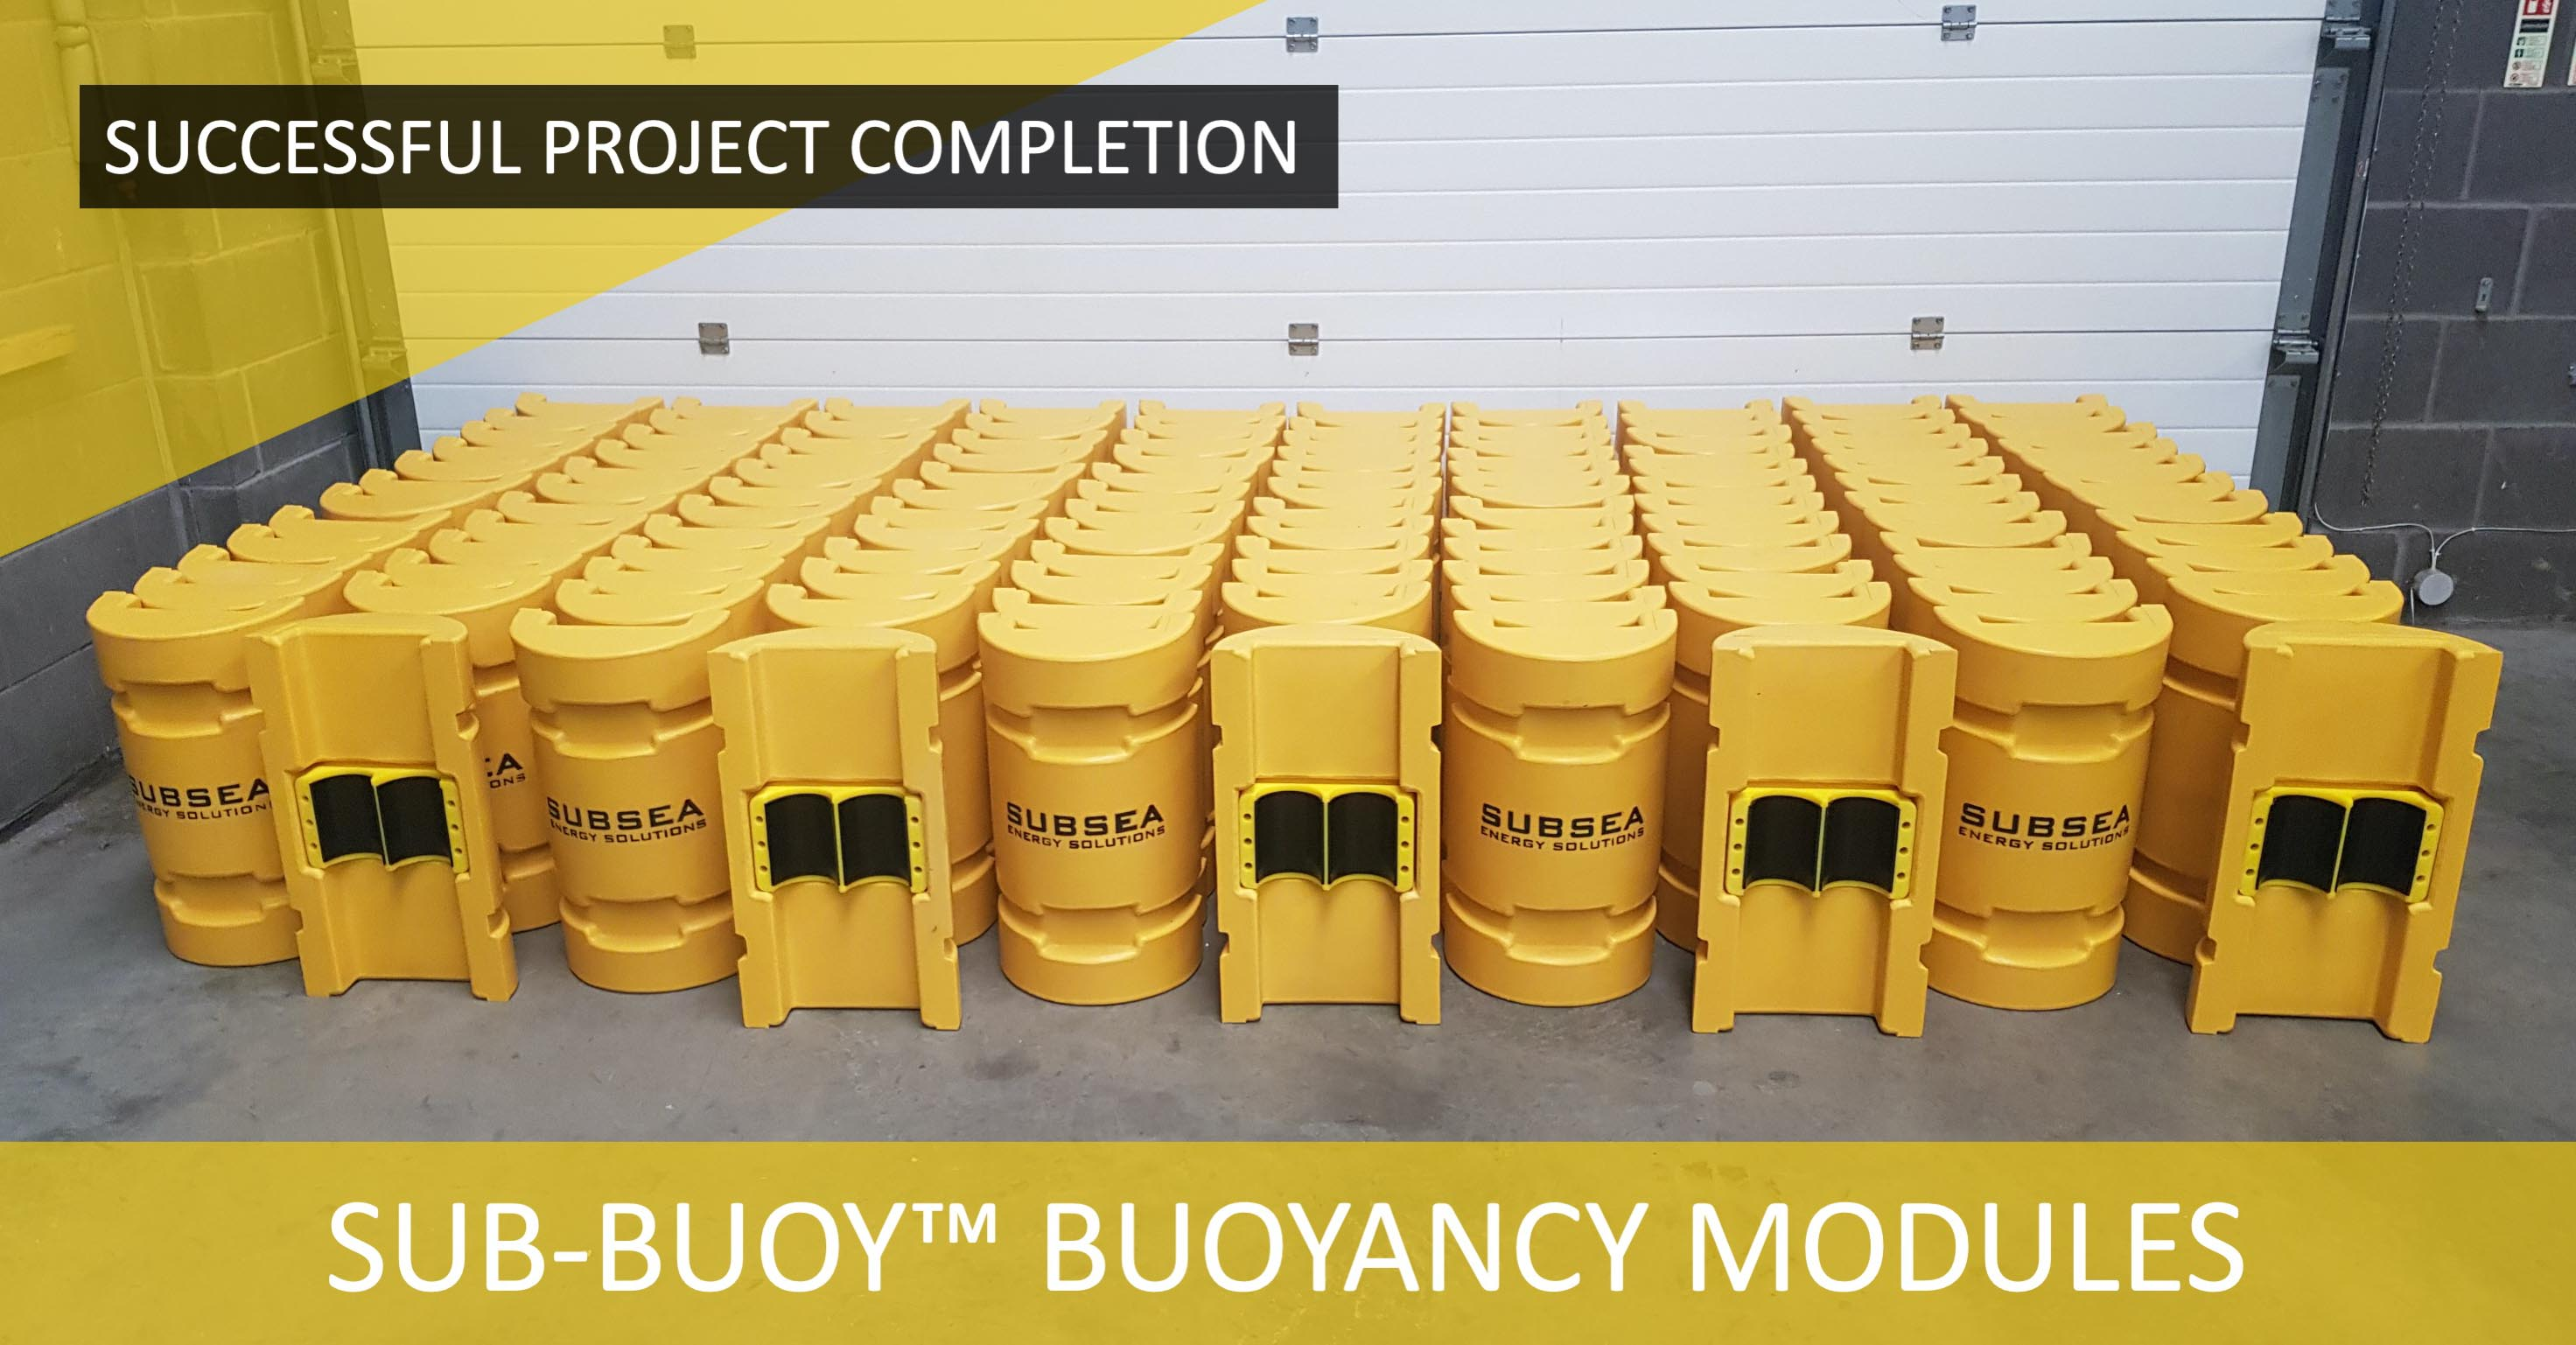 Subsea Energy Solutions provides SUB-BUOY™ Buoyancy Modules